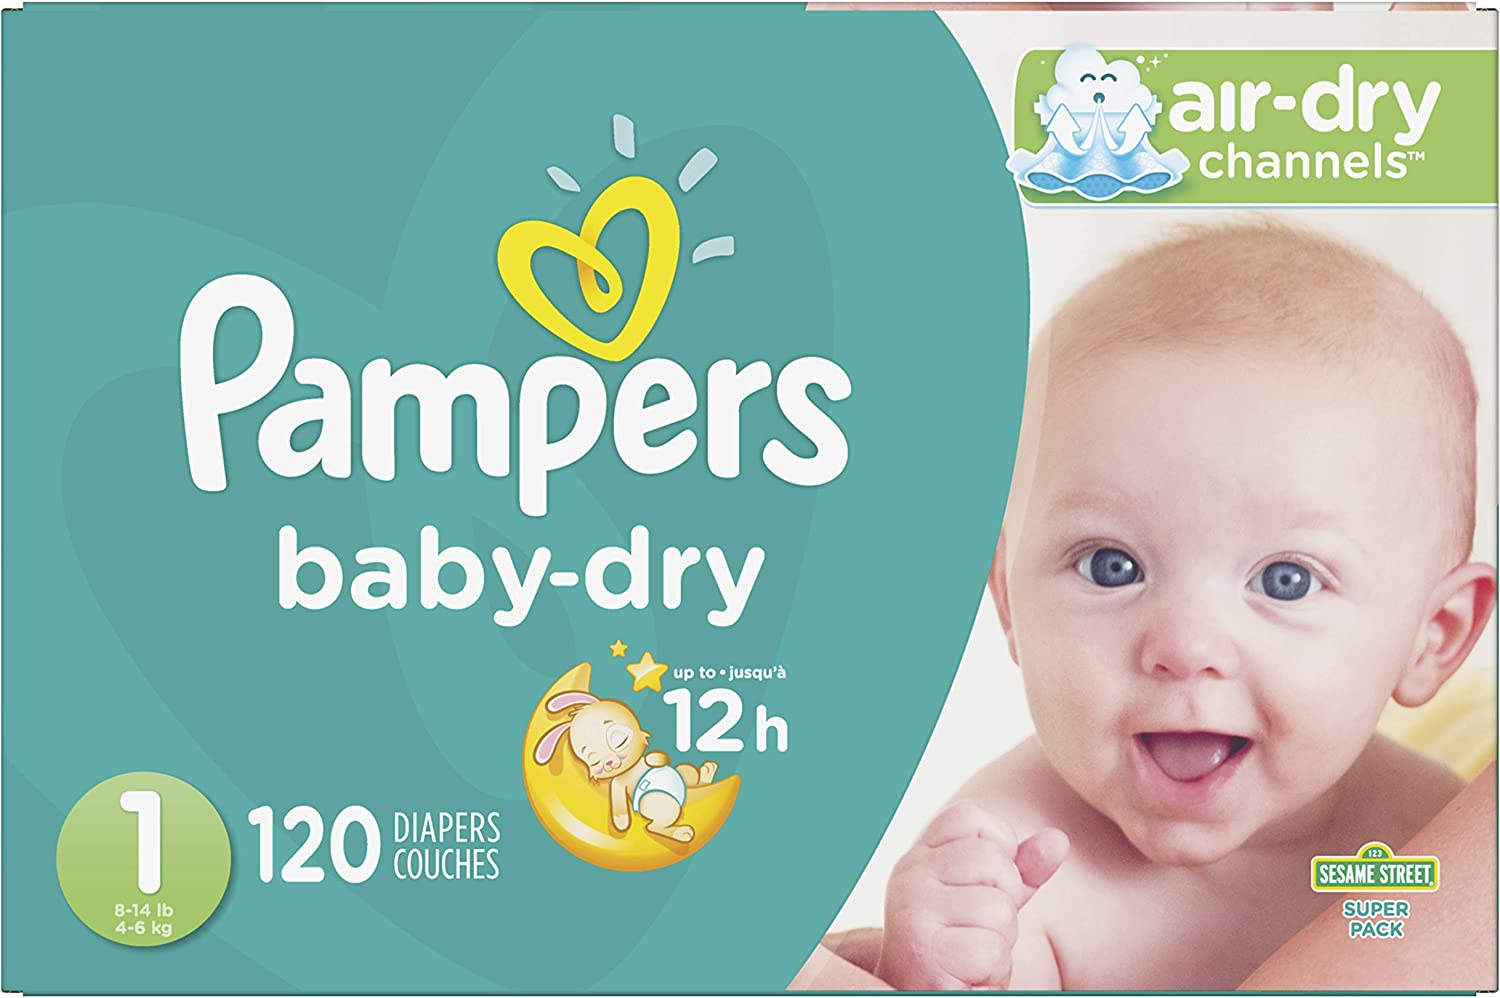 Diapers Newborn/Size 1 (8-14 lb), 120 Count - Pampers Baby Dry Disposable Baby Diapers, Super Pack: Health & Personal Care